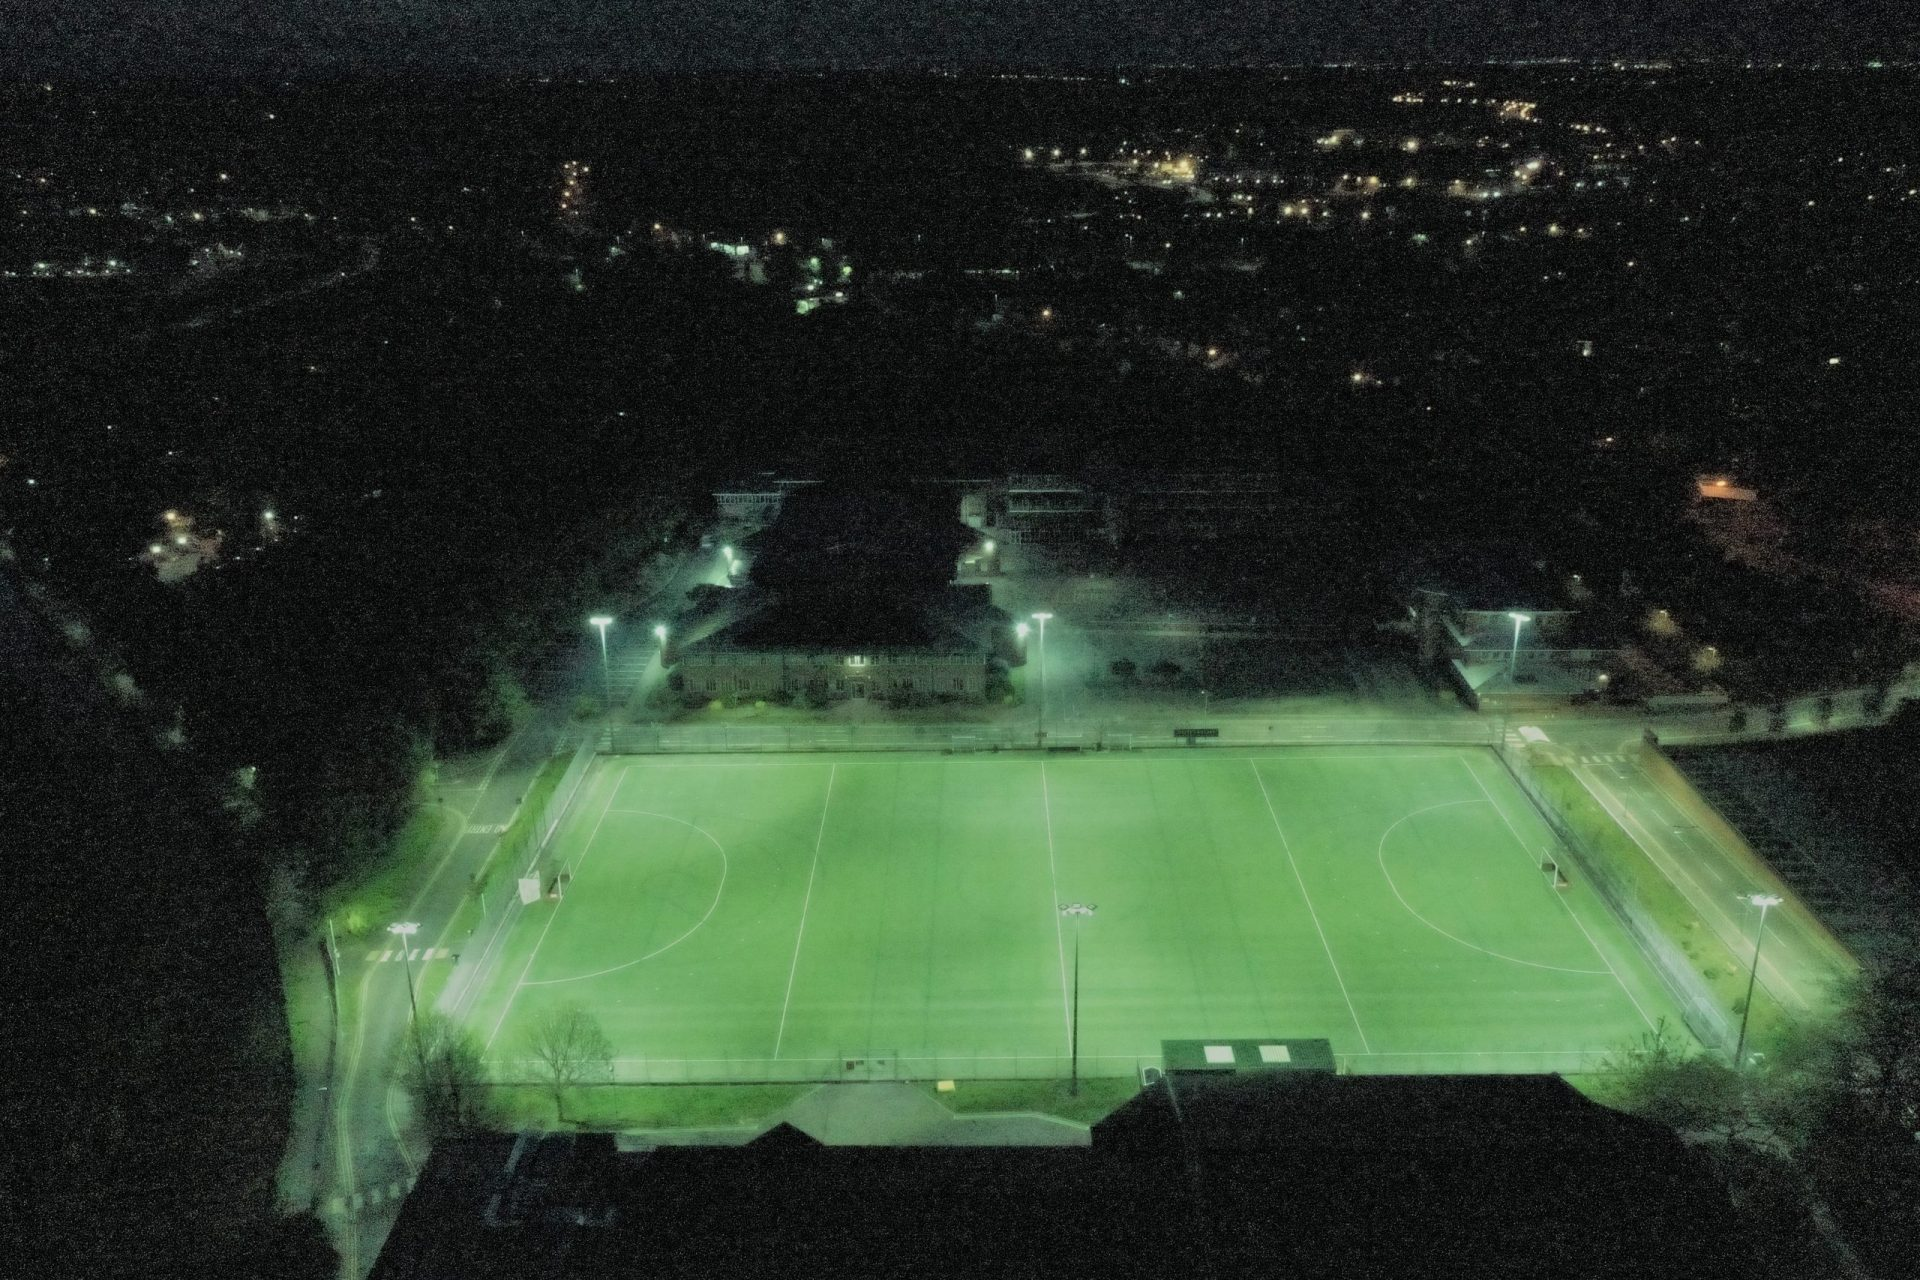 University of Chester LED Floodlight Sport Lighting